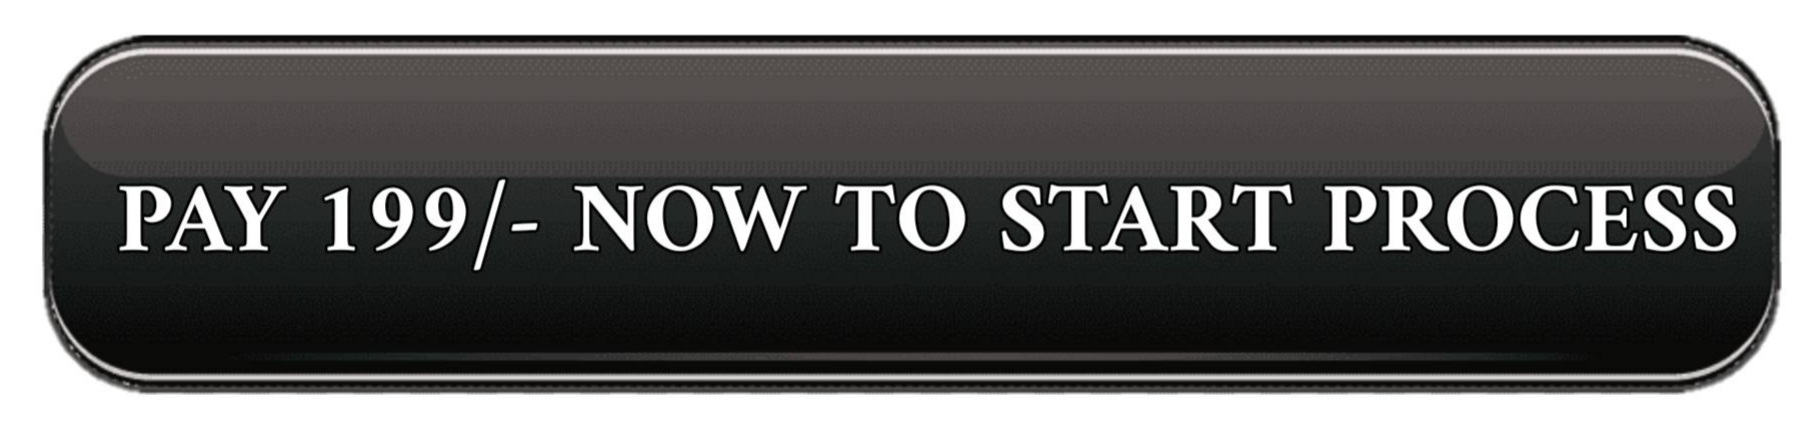 How to legally change your name